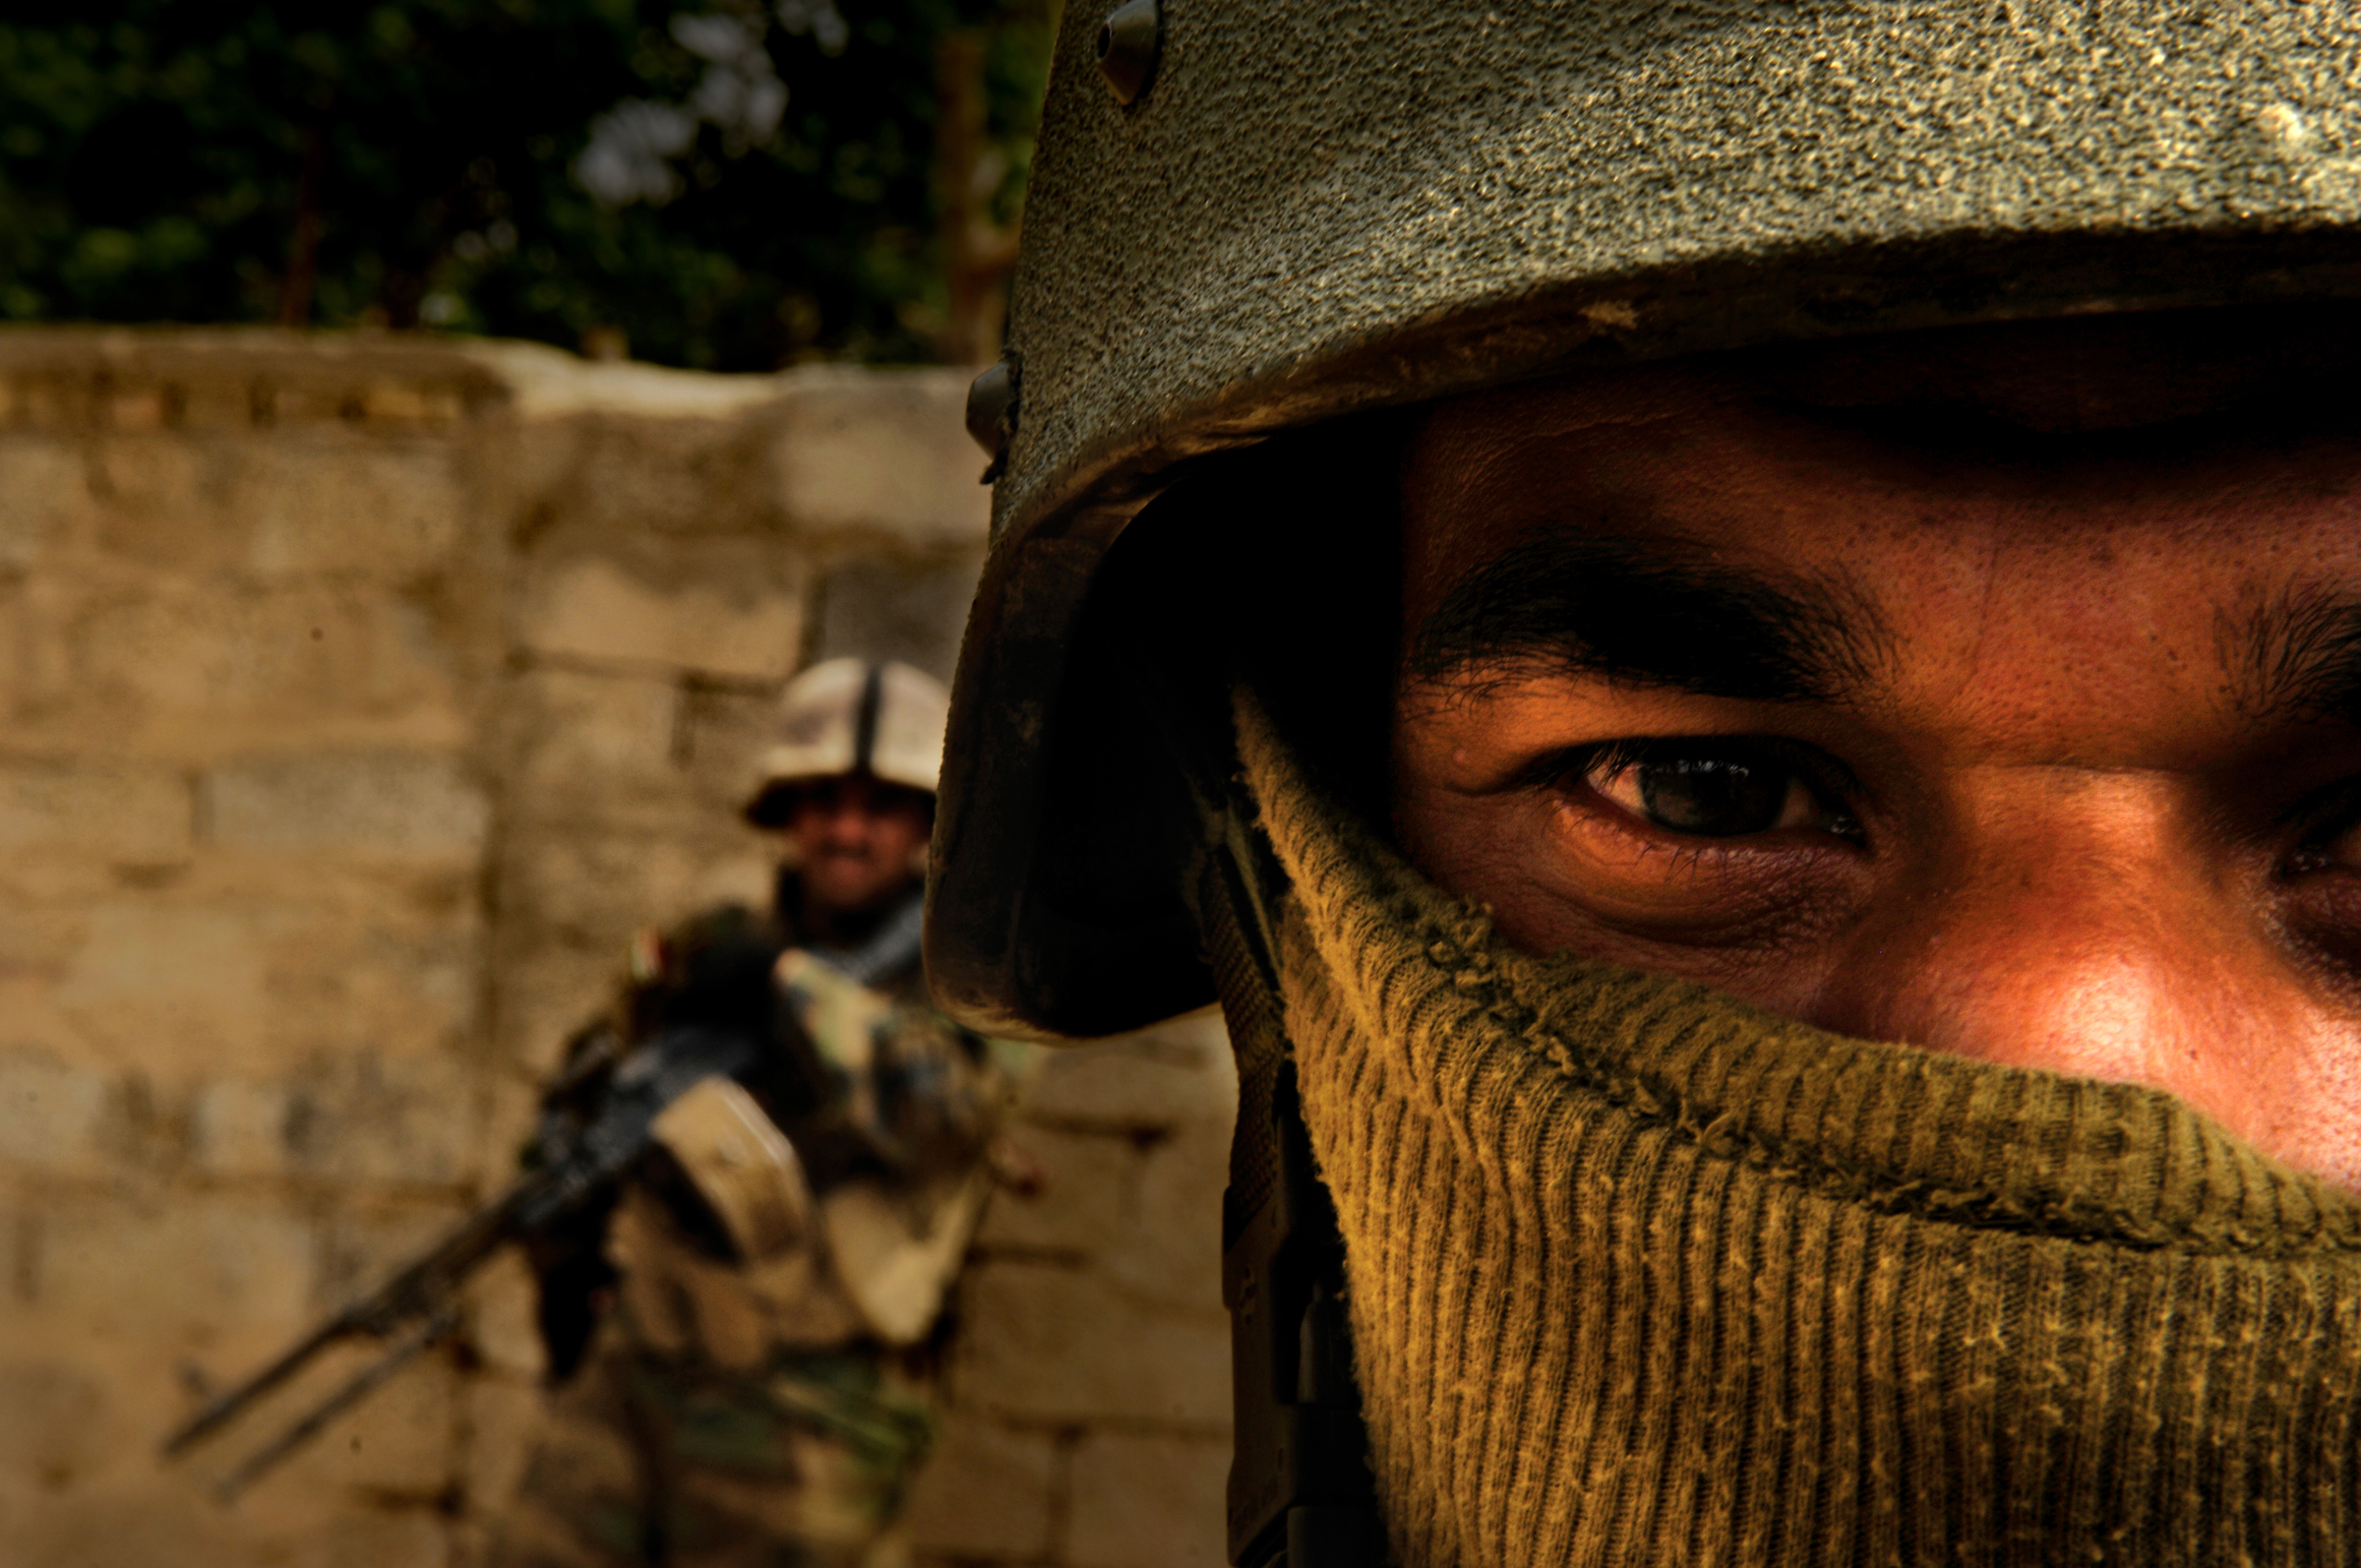 An Iraqi Army soldier covers his face to maintain anonymity within his community during routine foot patrols in New Baqubah, Iraq. 2007 © Stacy Pearsall